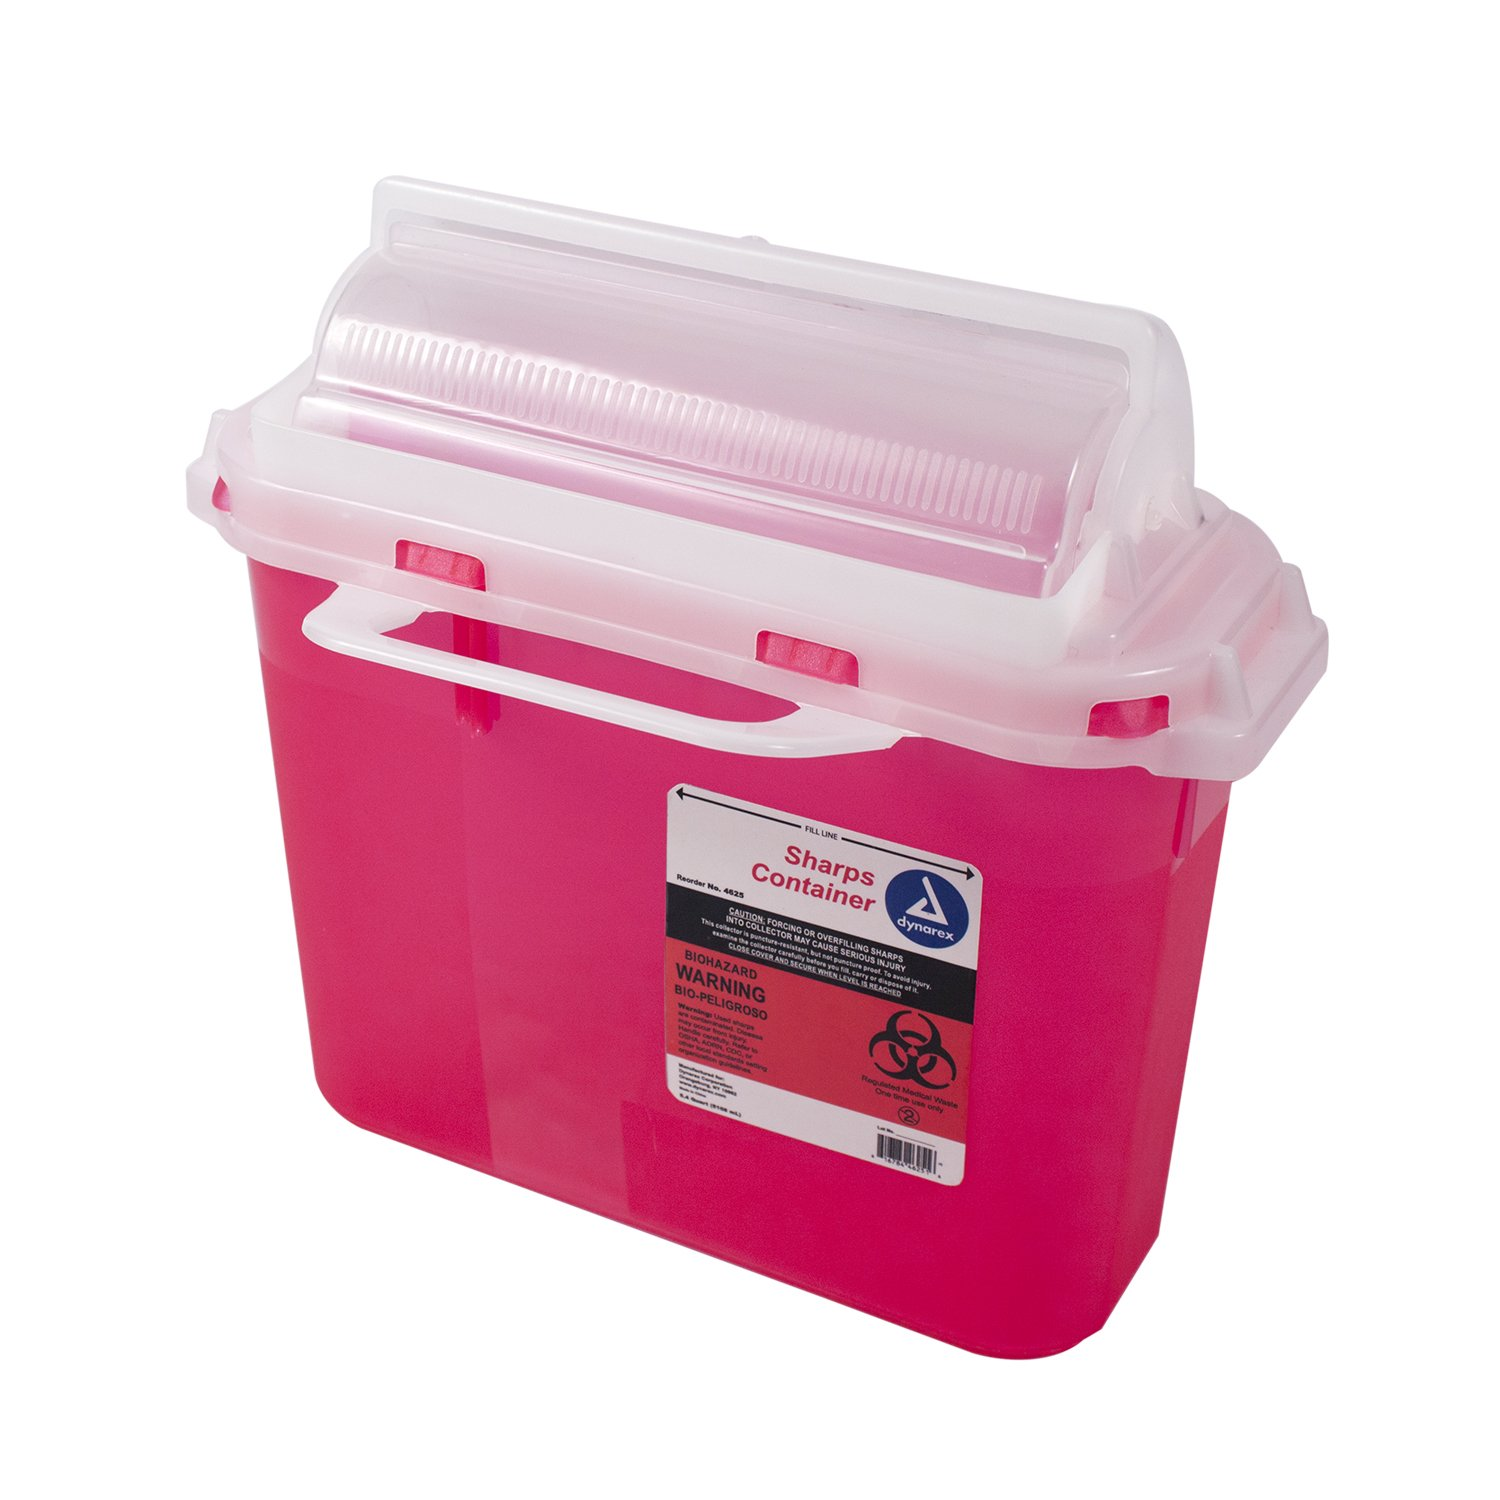 Dynarex Sharps Container - Biohazard Patient Room Needle Disposable - Puncture Resistant - One Handed Use - 5.4 Quart